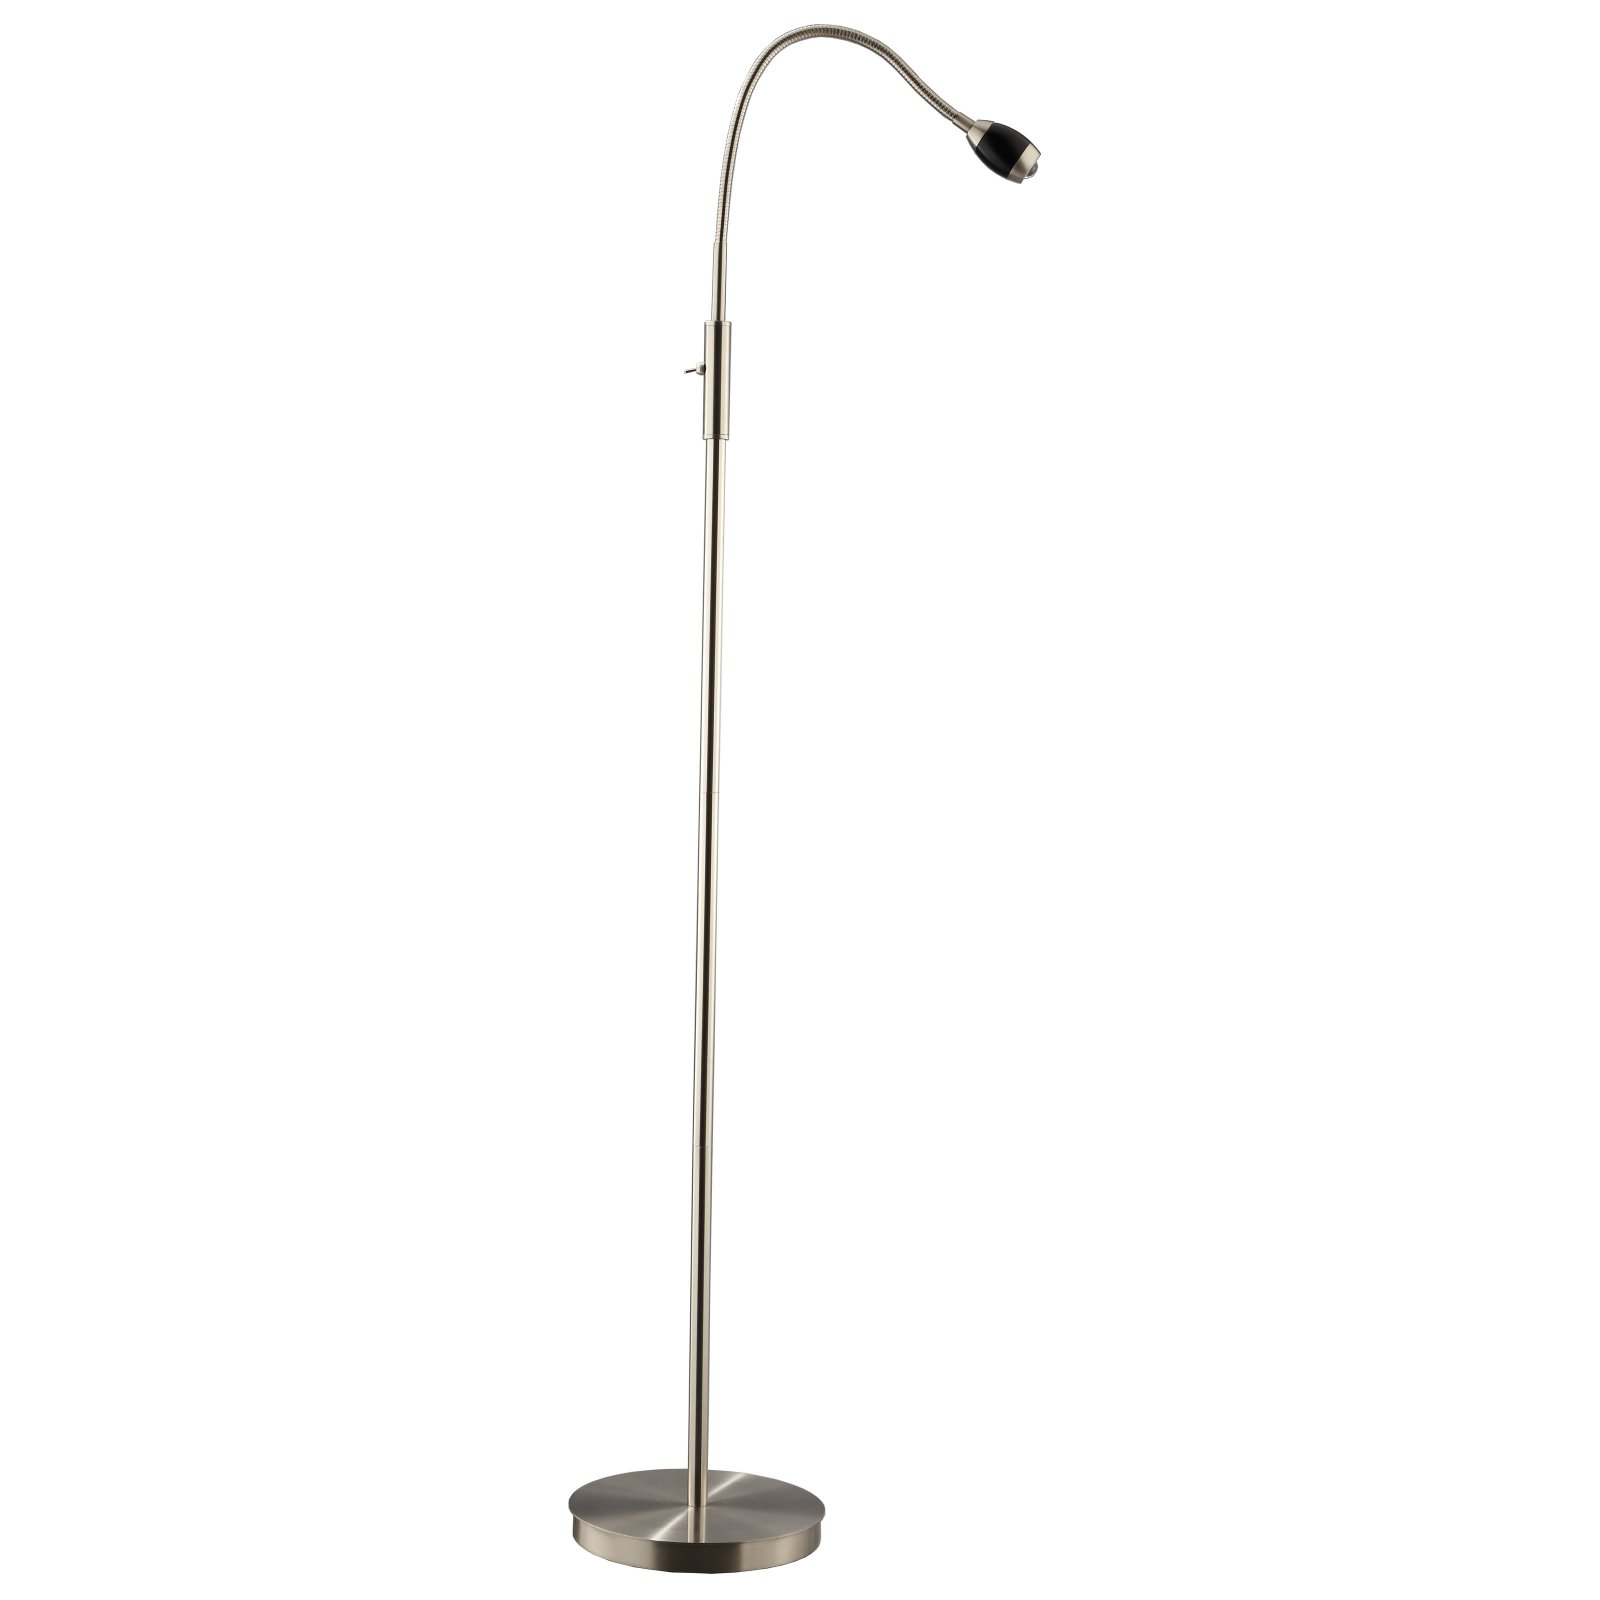 Daylight 24 High Output LED Adjustable Beam Floor Task Lamp by LIVEDITOR LIGHTING